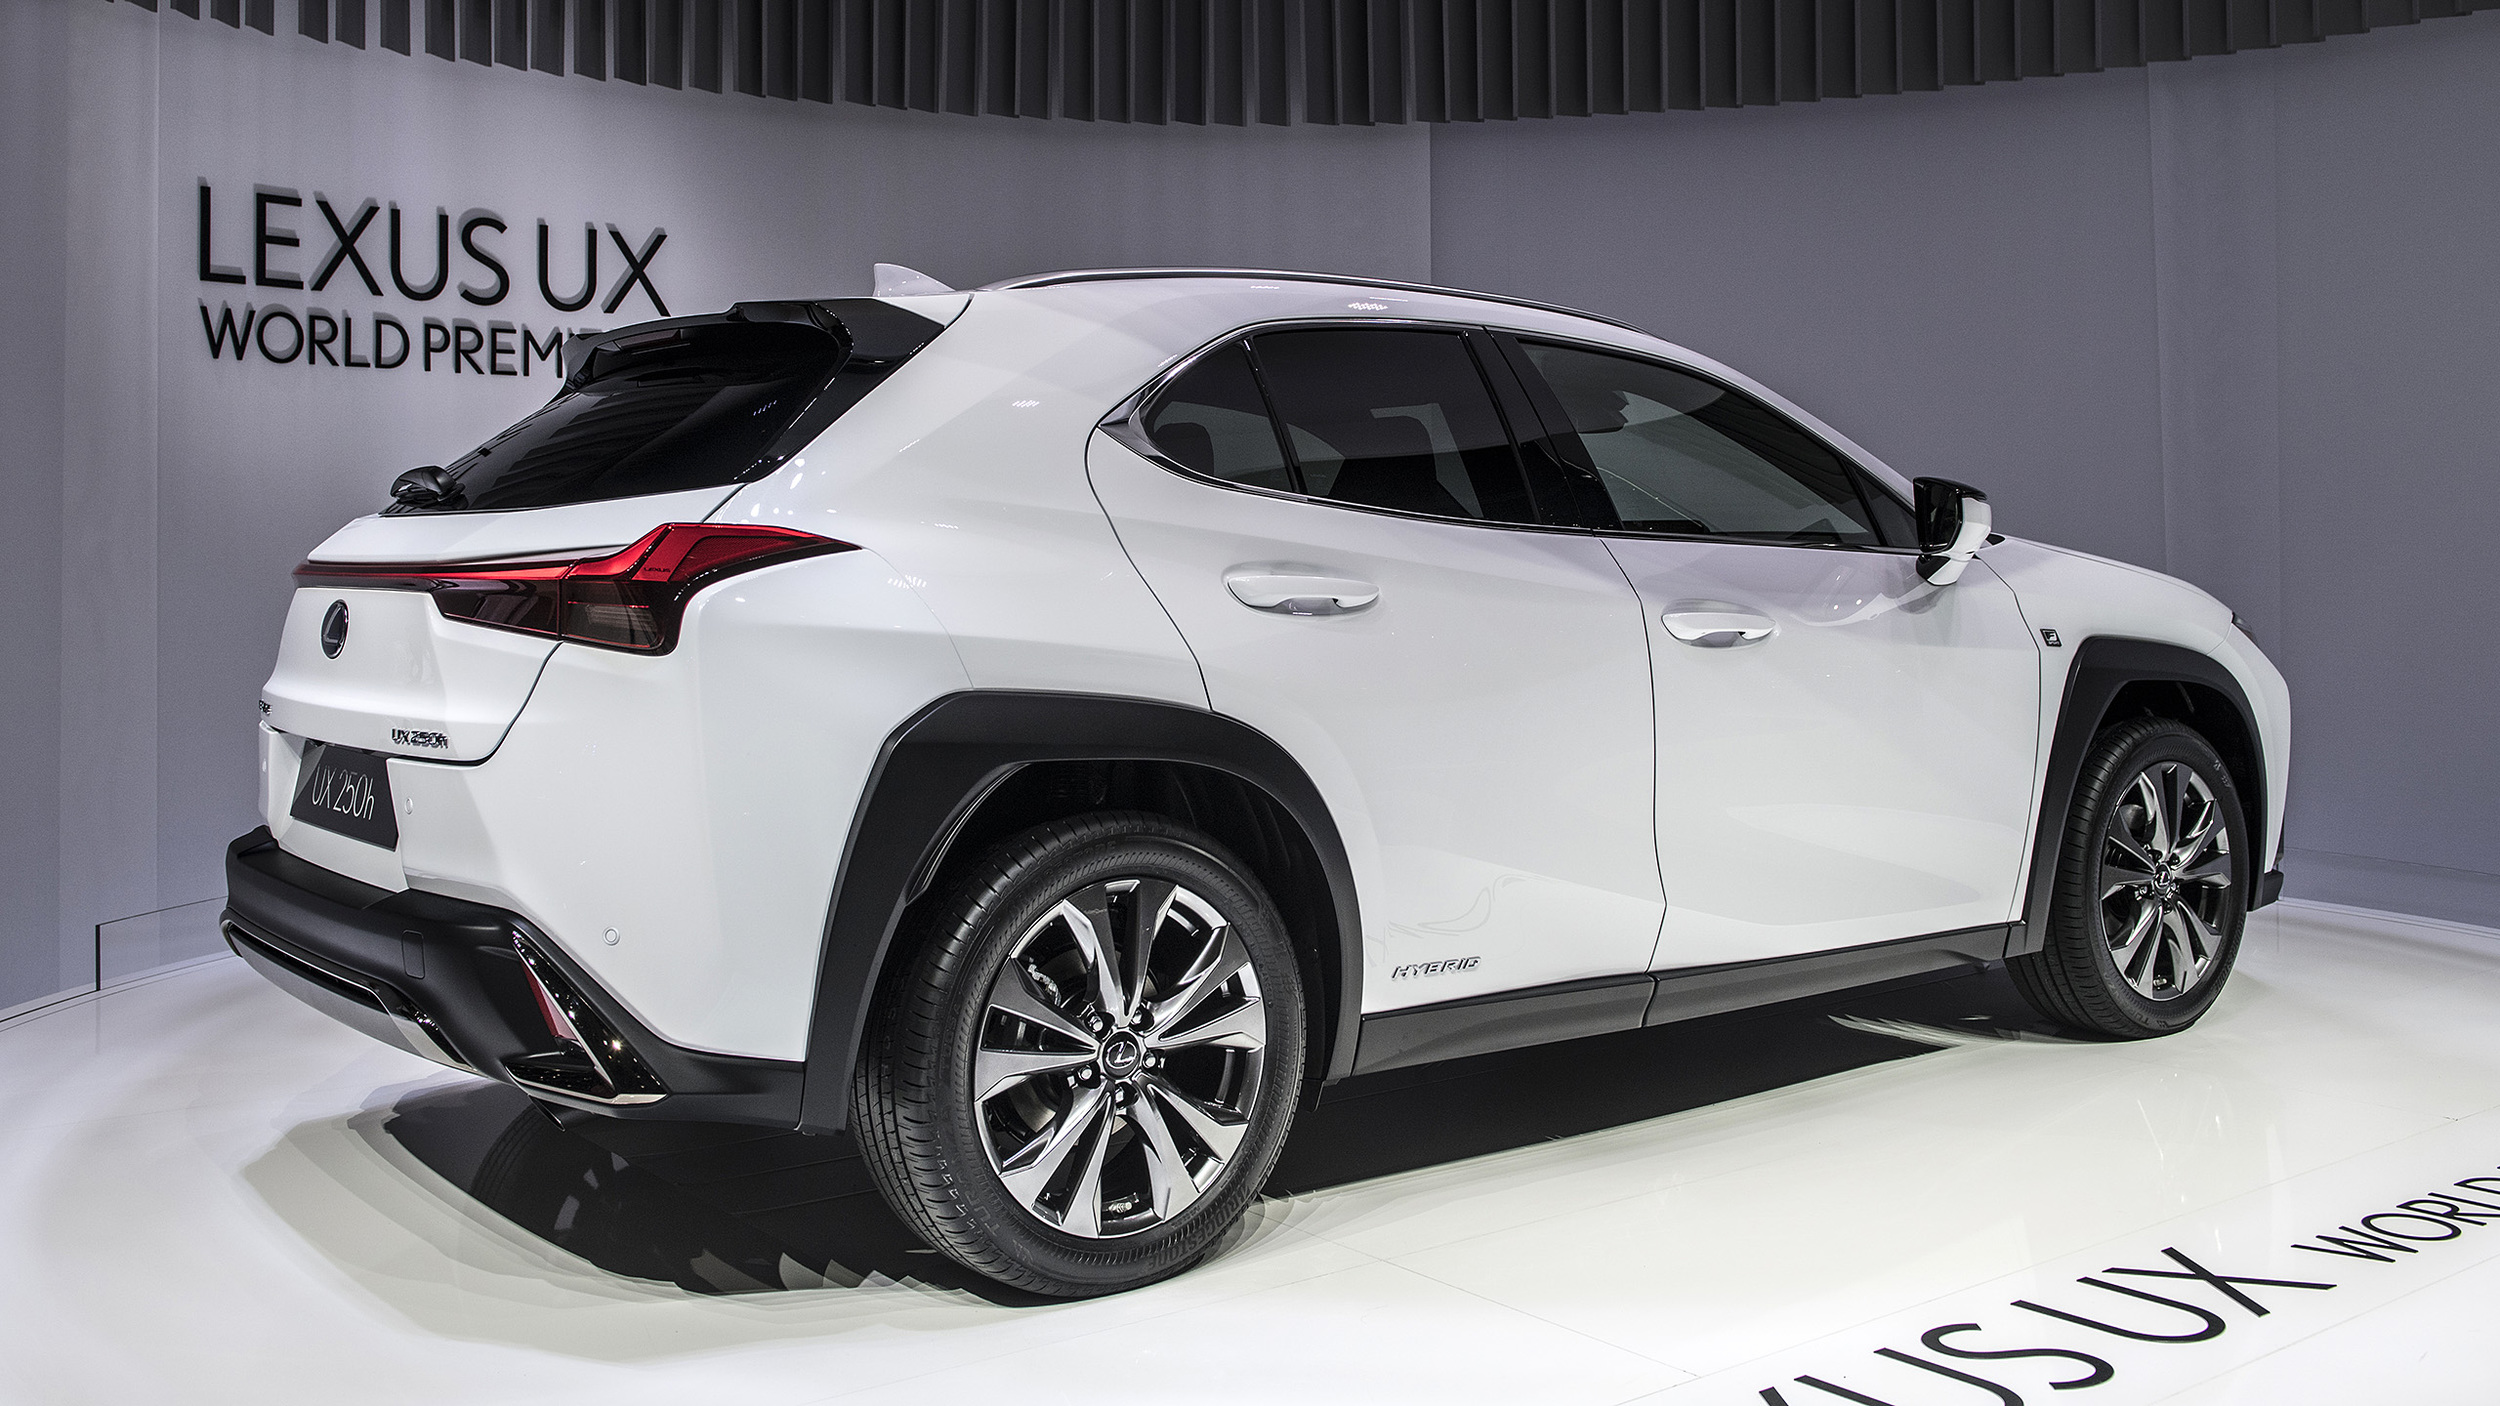 Lexus Pre Owned >> 2019 Lexus UX 200 and UX 250h crossovers revealed at ...